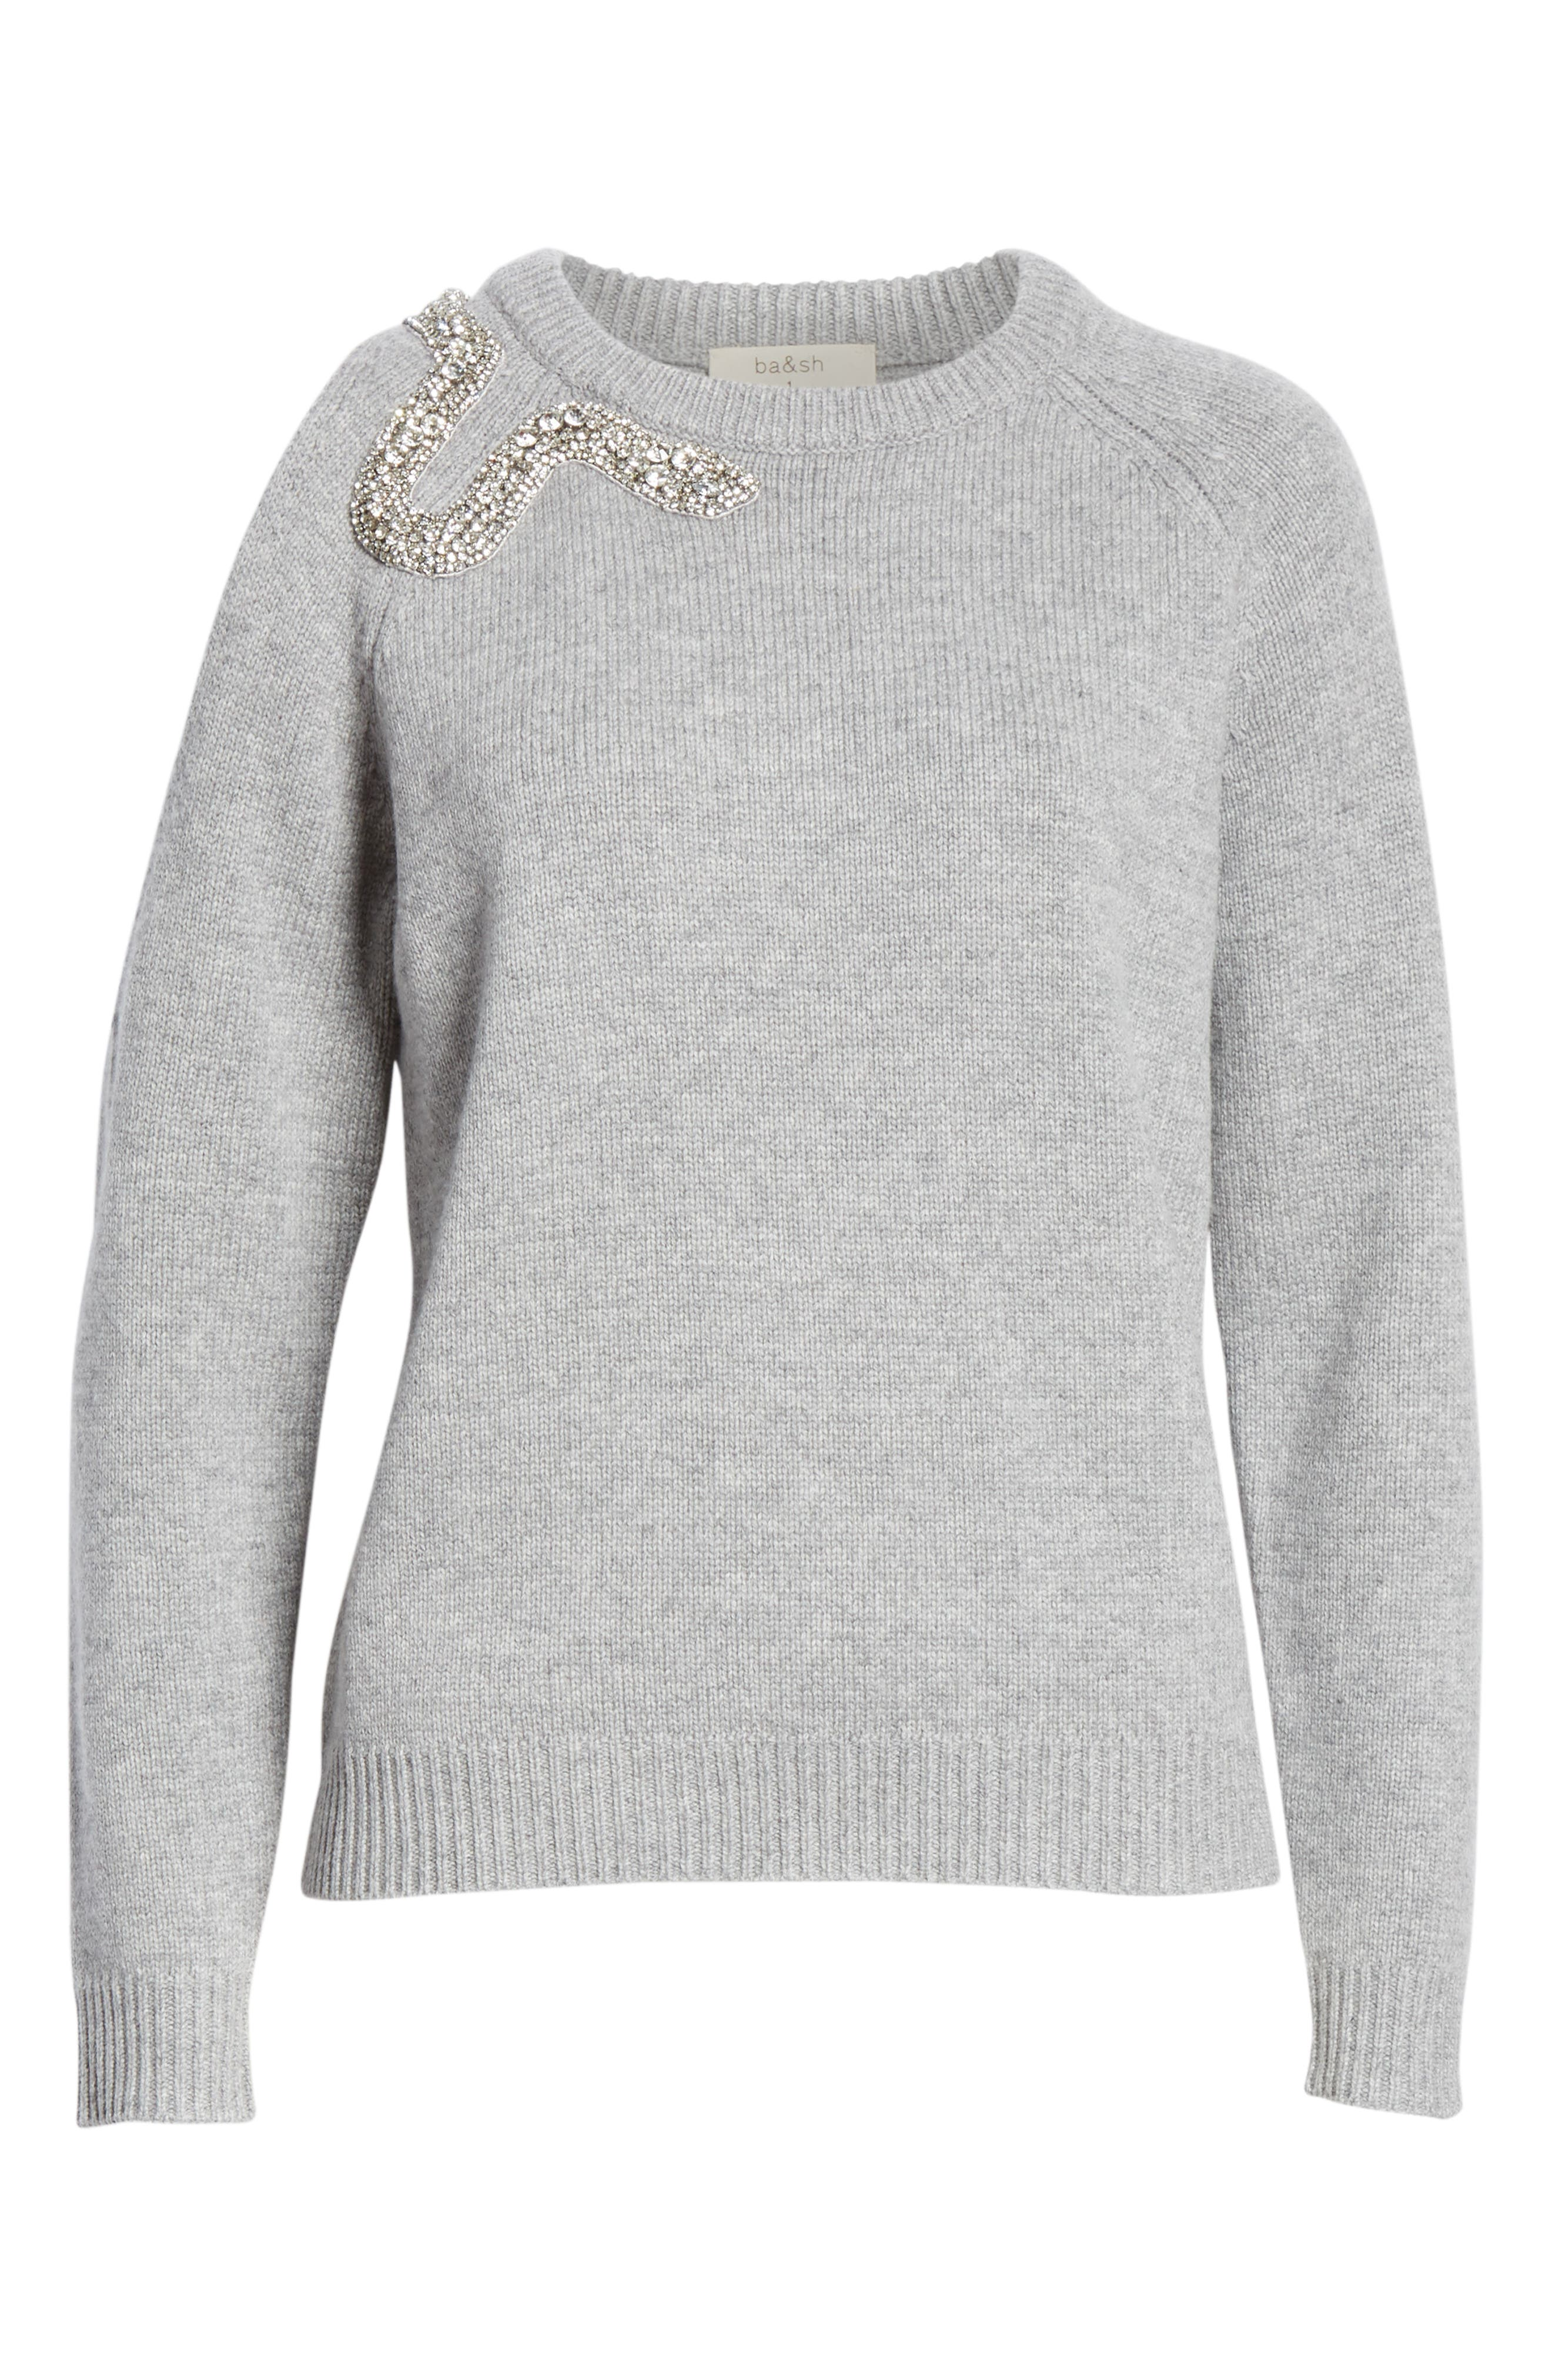 Ossi Embellished Wool Sweater,                             Alternate thumbnail 6, color,                             GRIS